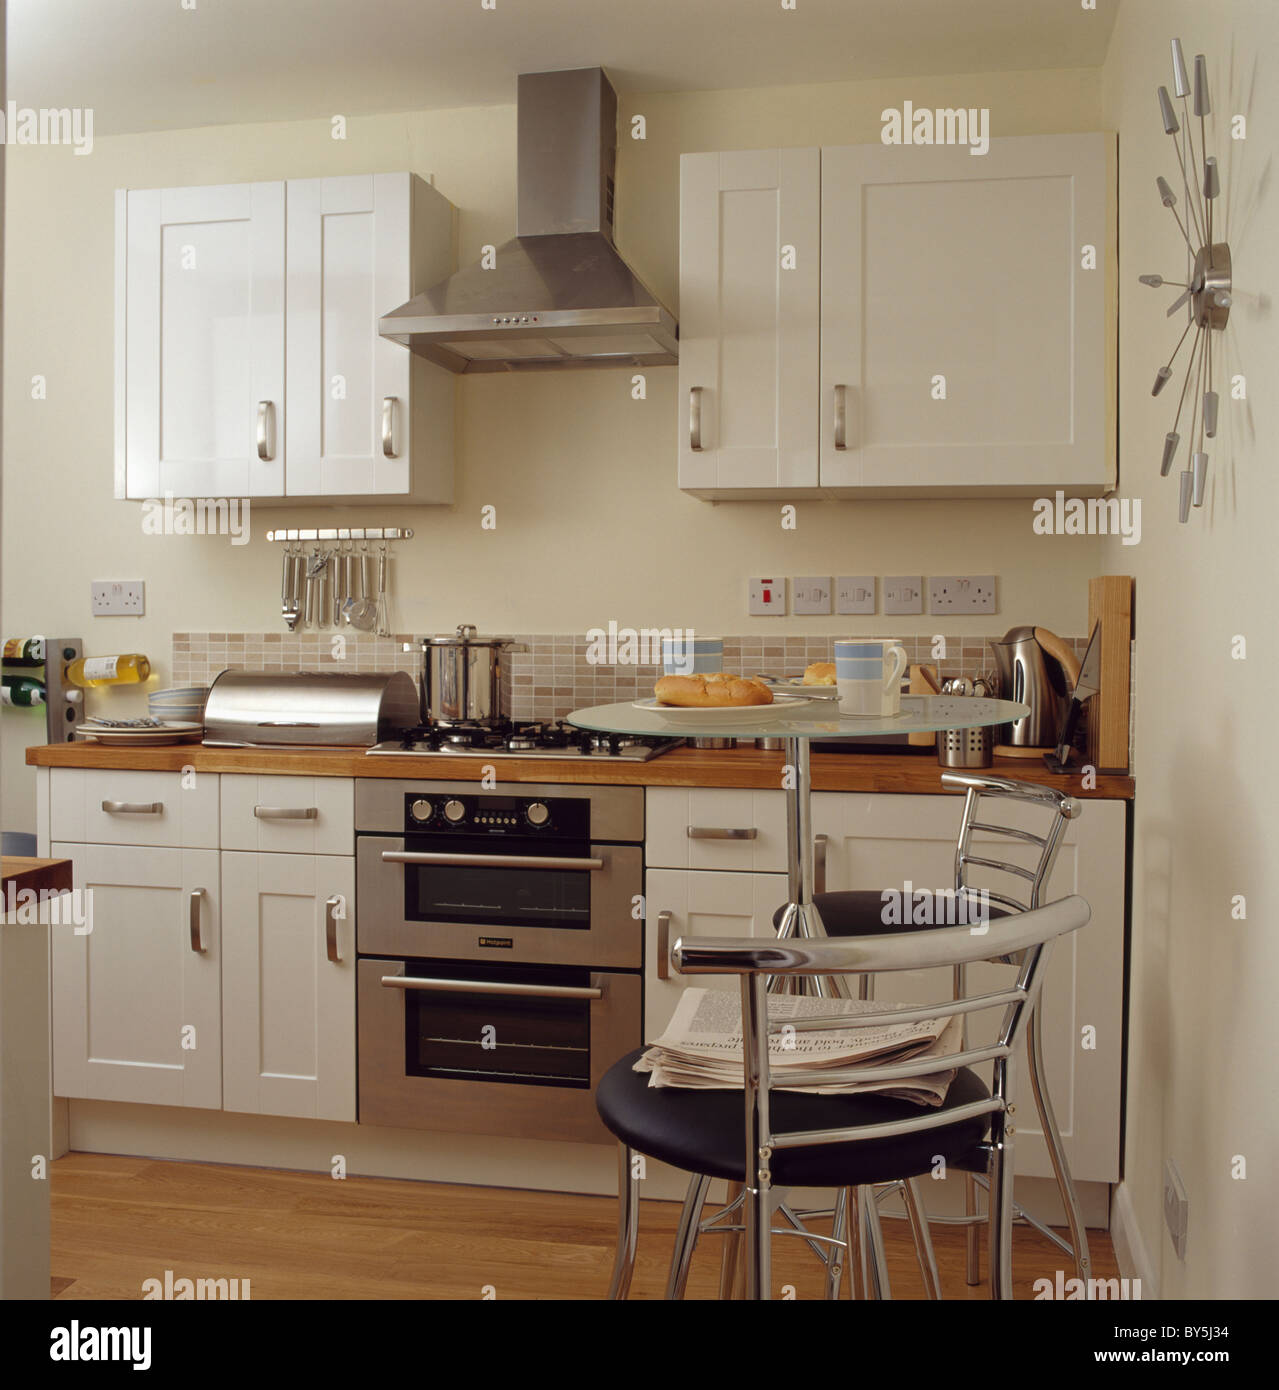 Off White Kitchen Cabinets With Stainless Appliances: Stainless Steel Extractor Above Steel Oven In Modern Cream